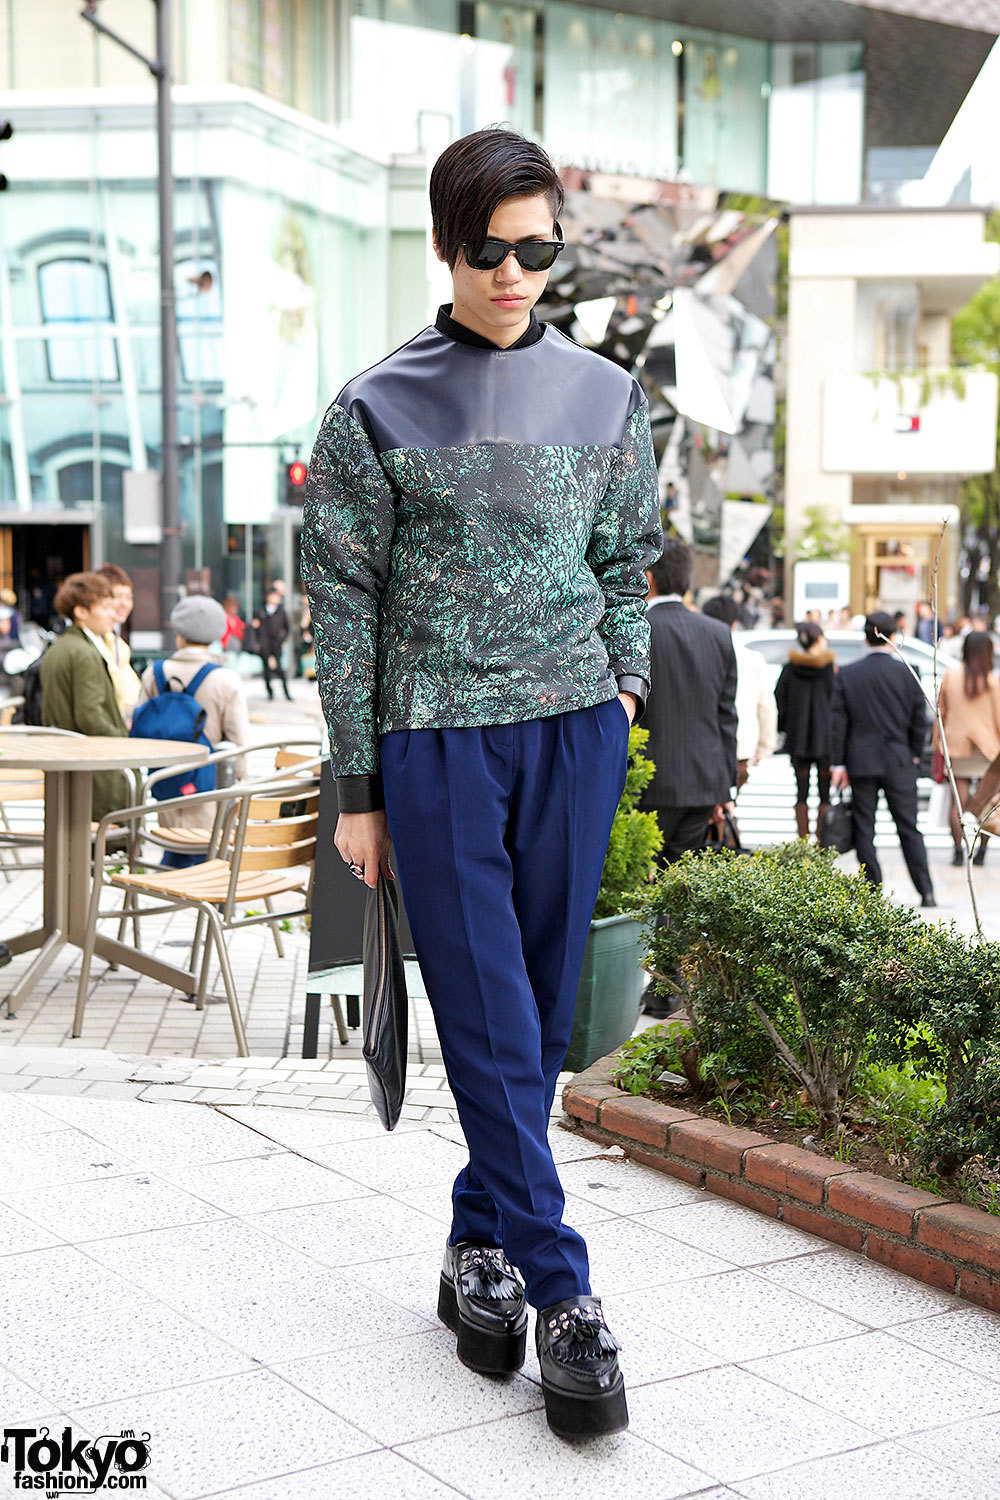 17-year-old Taiga in Harajuku w/ Christian Dada & American Apparel.